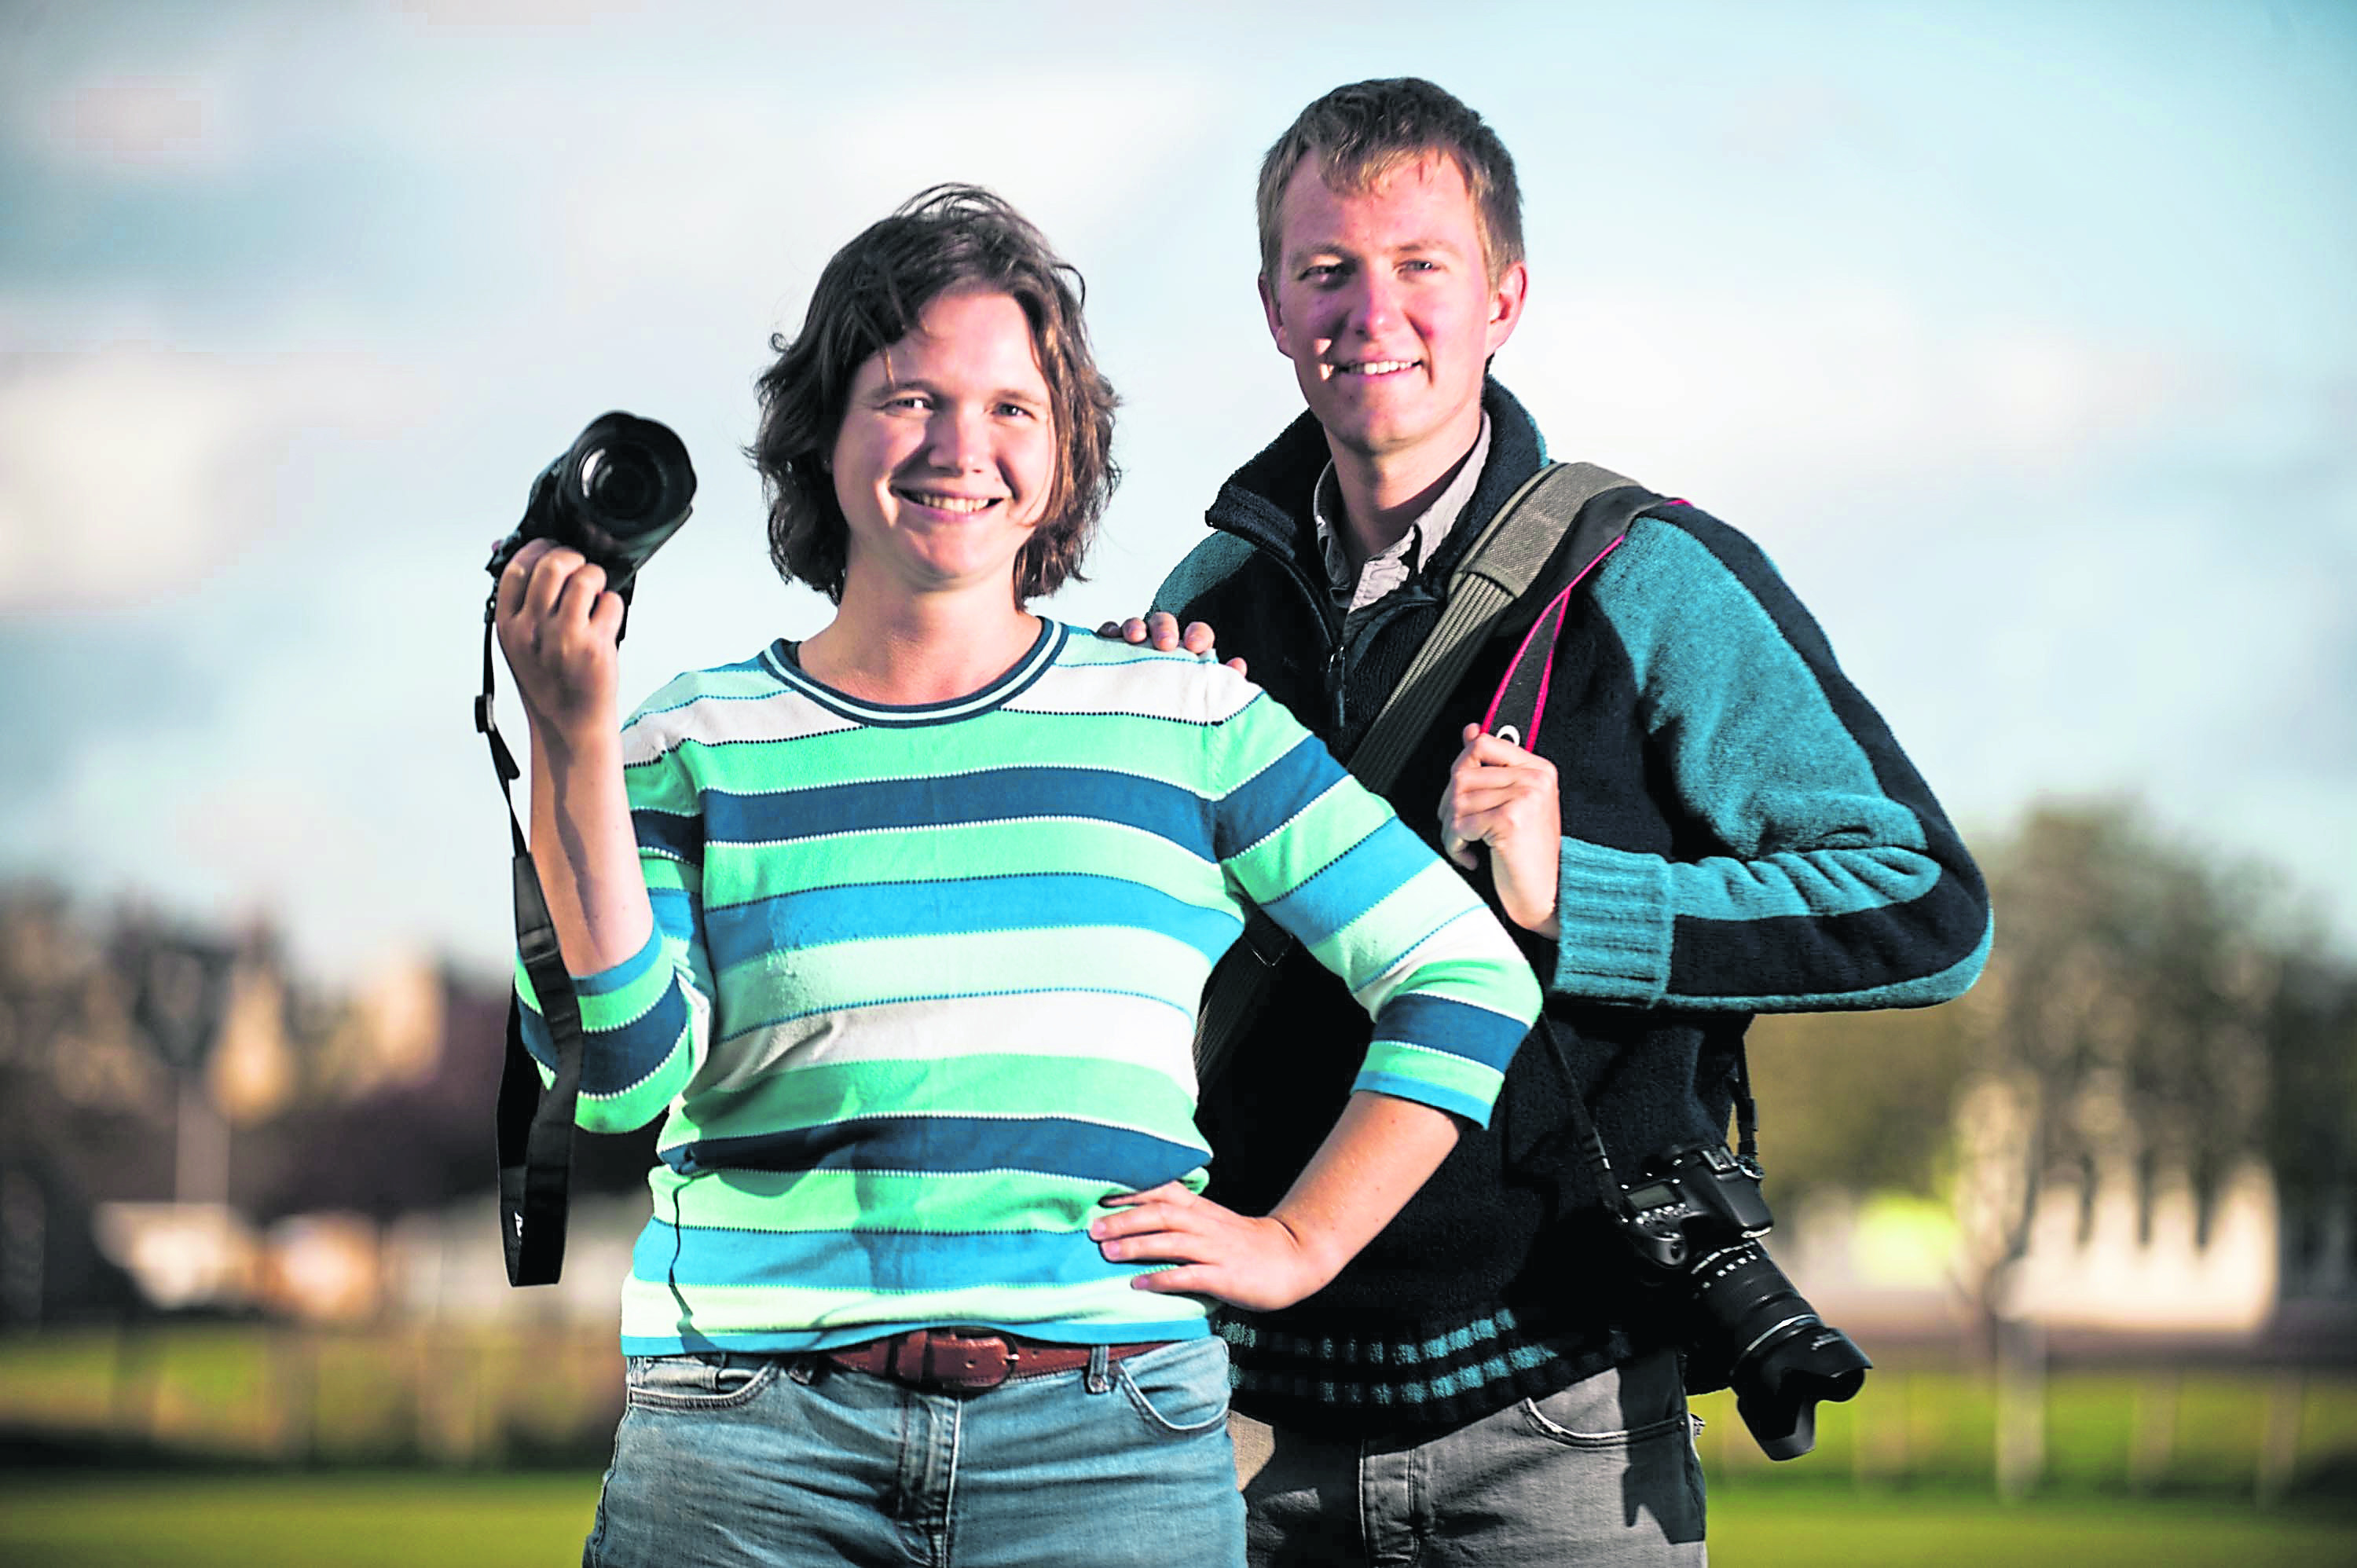 Business start ups in Moray currently have the best-ever success rate after three years. Photography firm Flying Mirrors in Forres, run by Alex Wright and Sara Brockbank, were set up three years ago.